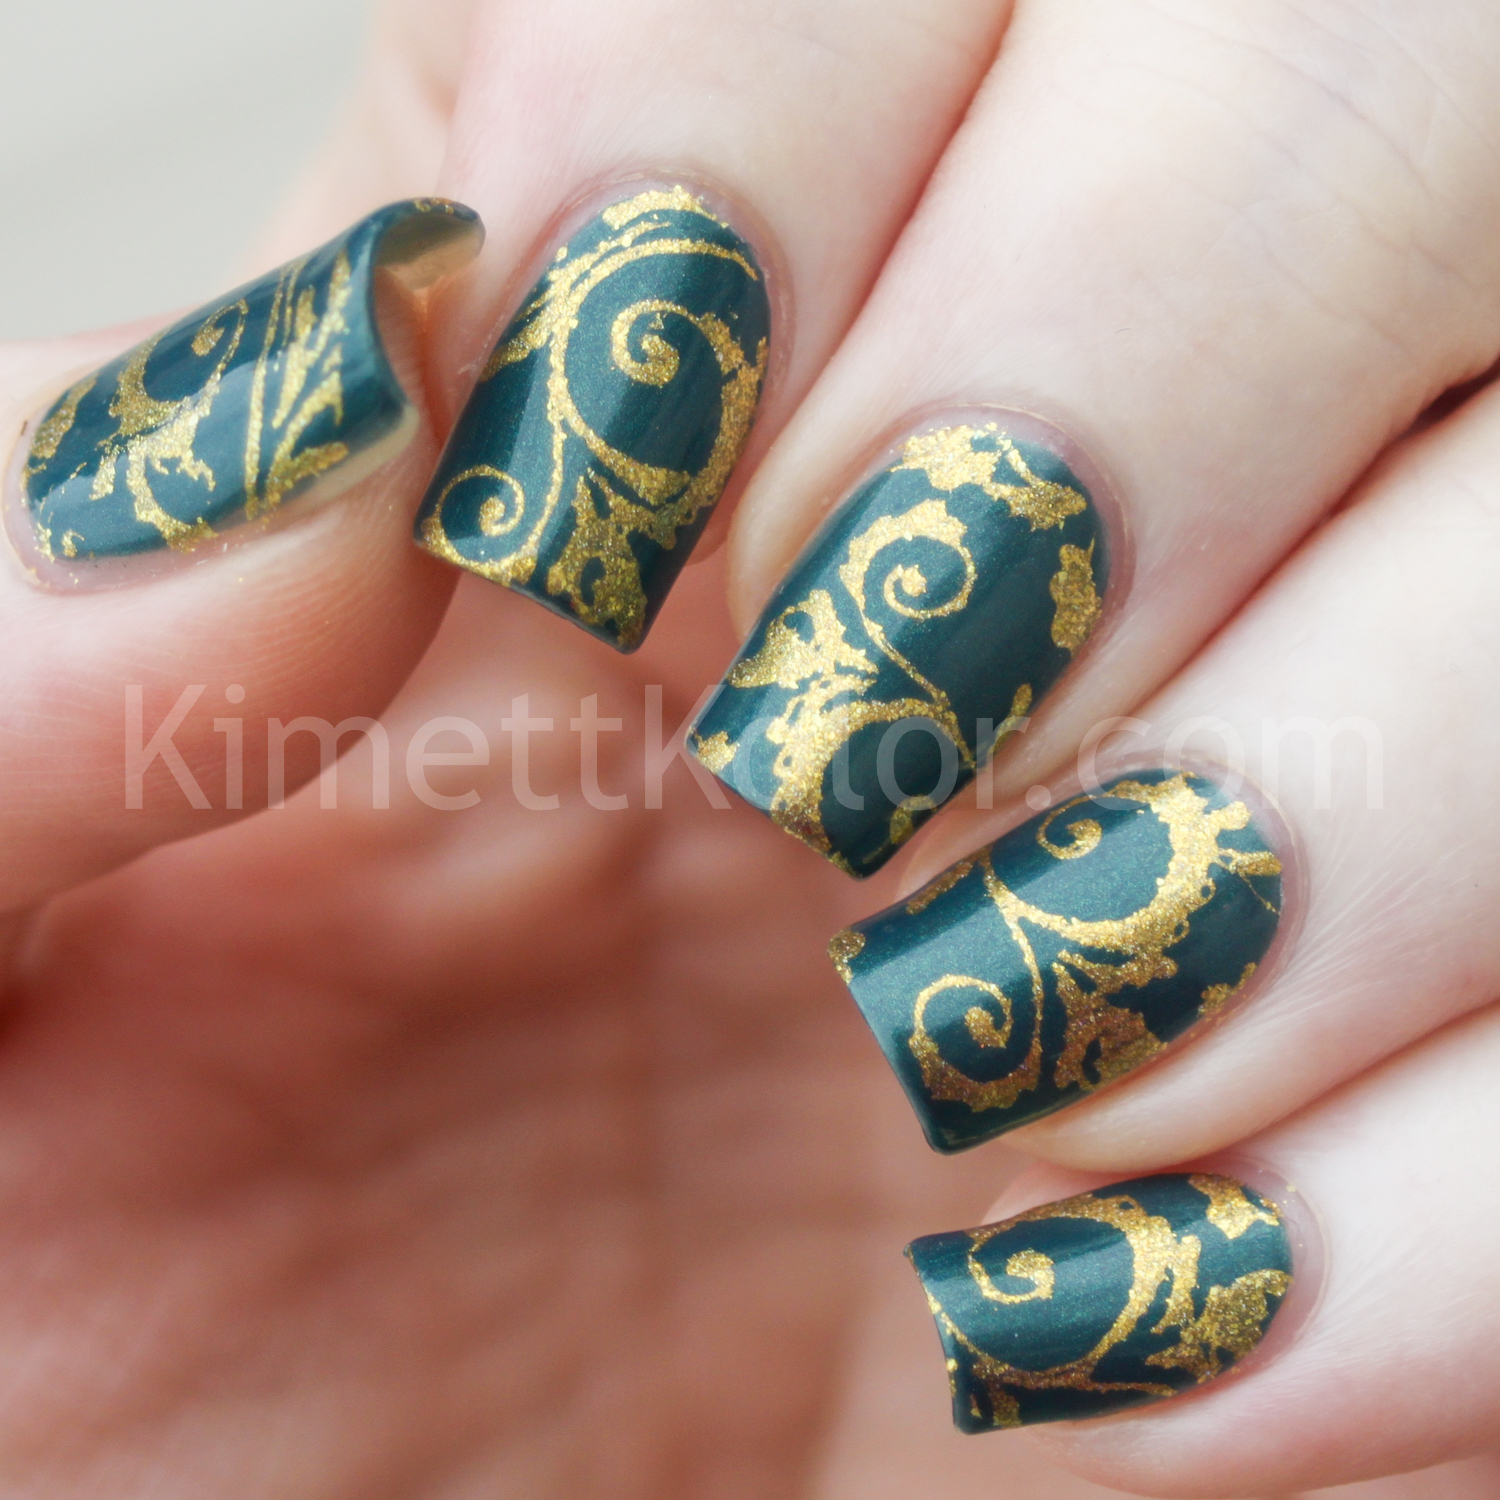 KimettKolor When Colours Collide Teal and Gold Nail Art